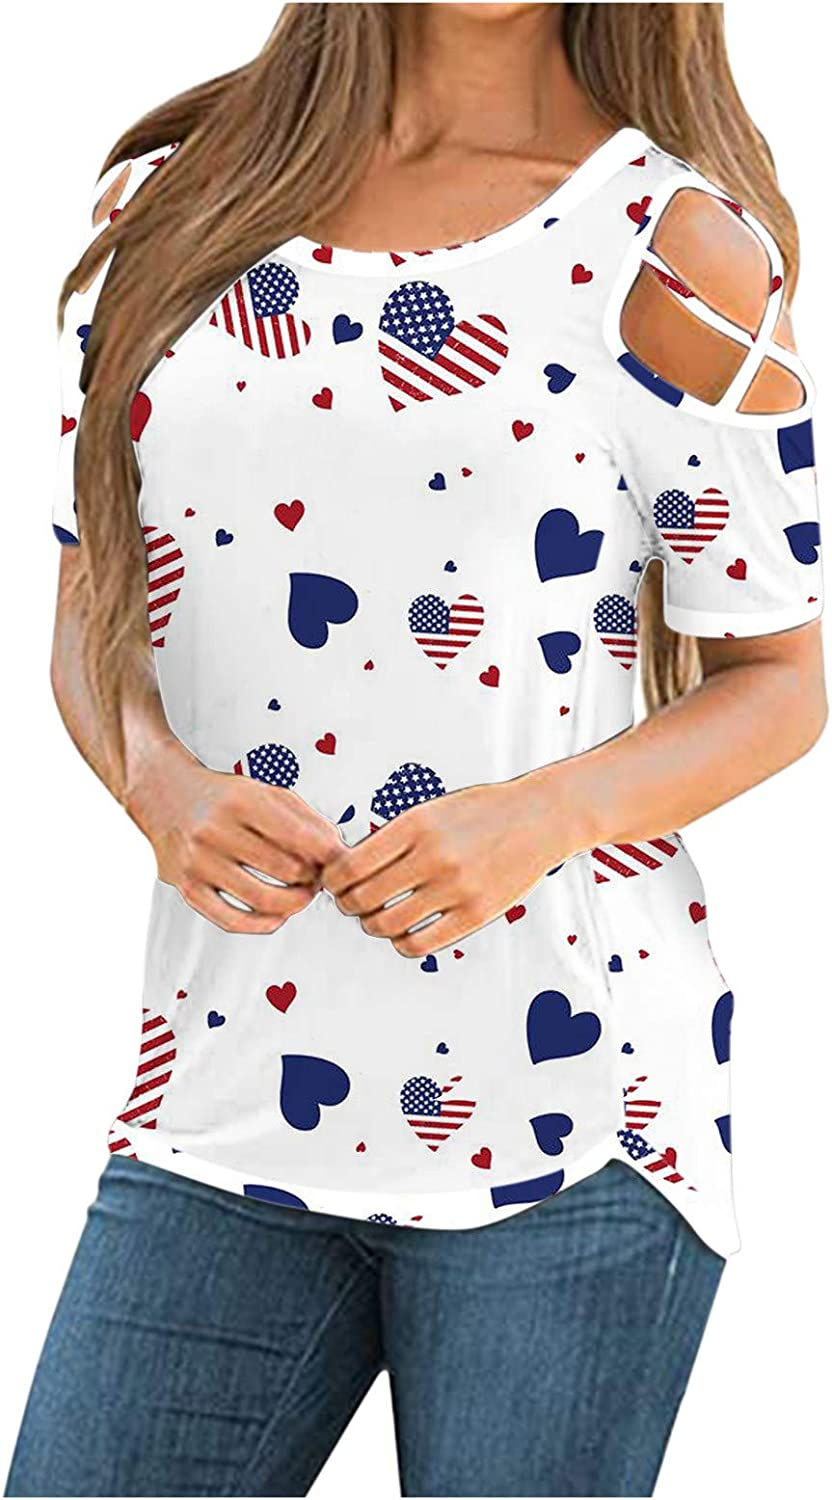 Cold Shoulder Tops for Women,Womens Tshirts Short Sleeve Summer Tops Strappy Cold Shoulder Shirts Crew Neck Tee Tunic